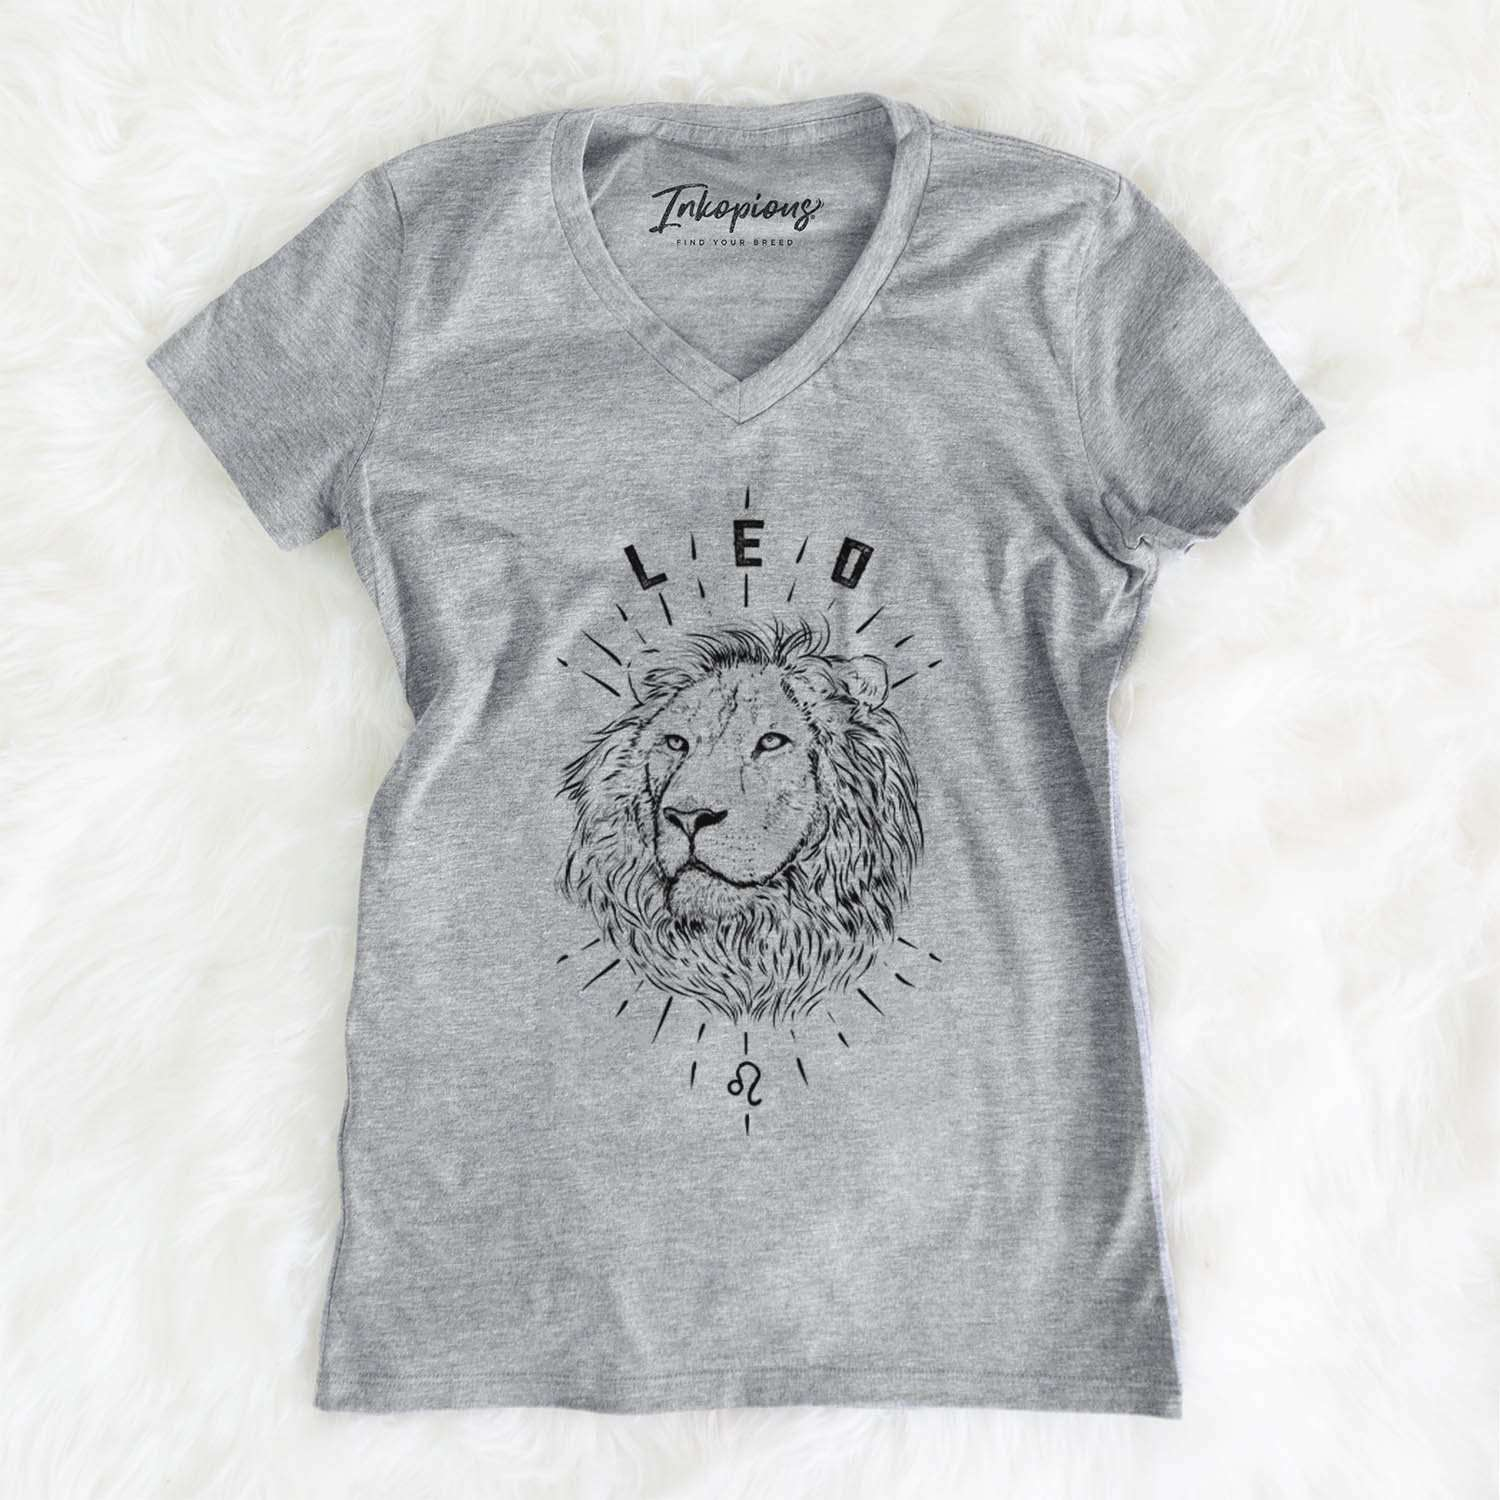 Leo  - Women's Modern Fit V-neck Shirt